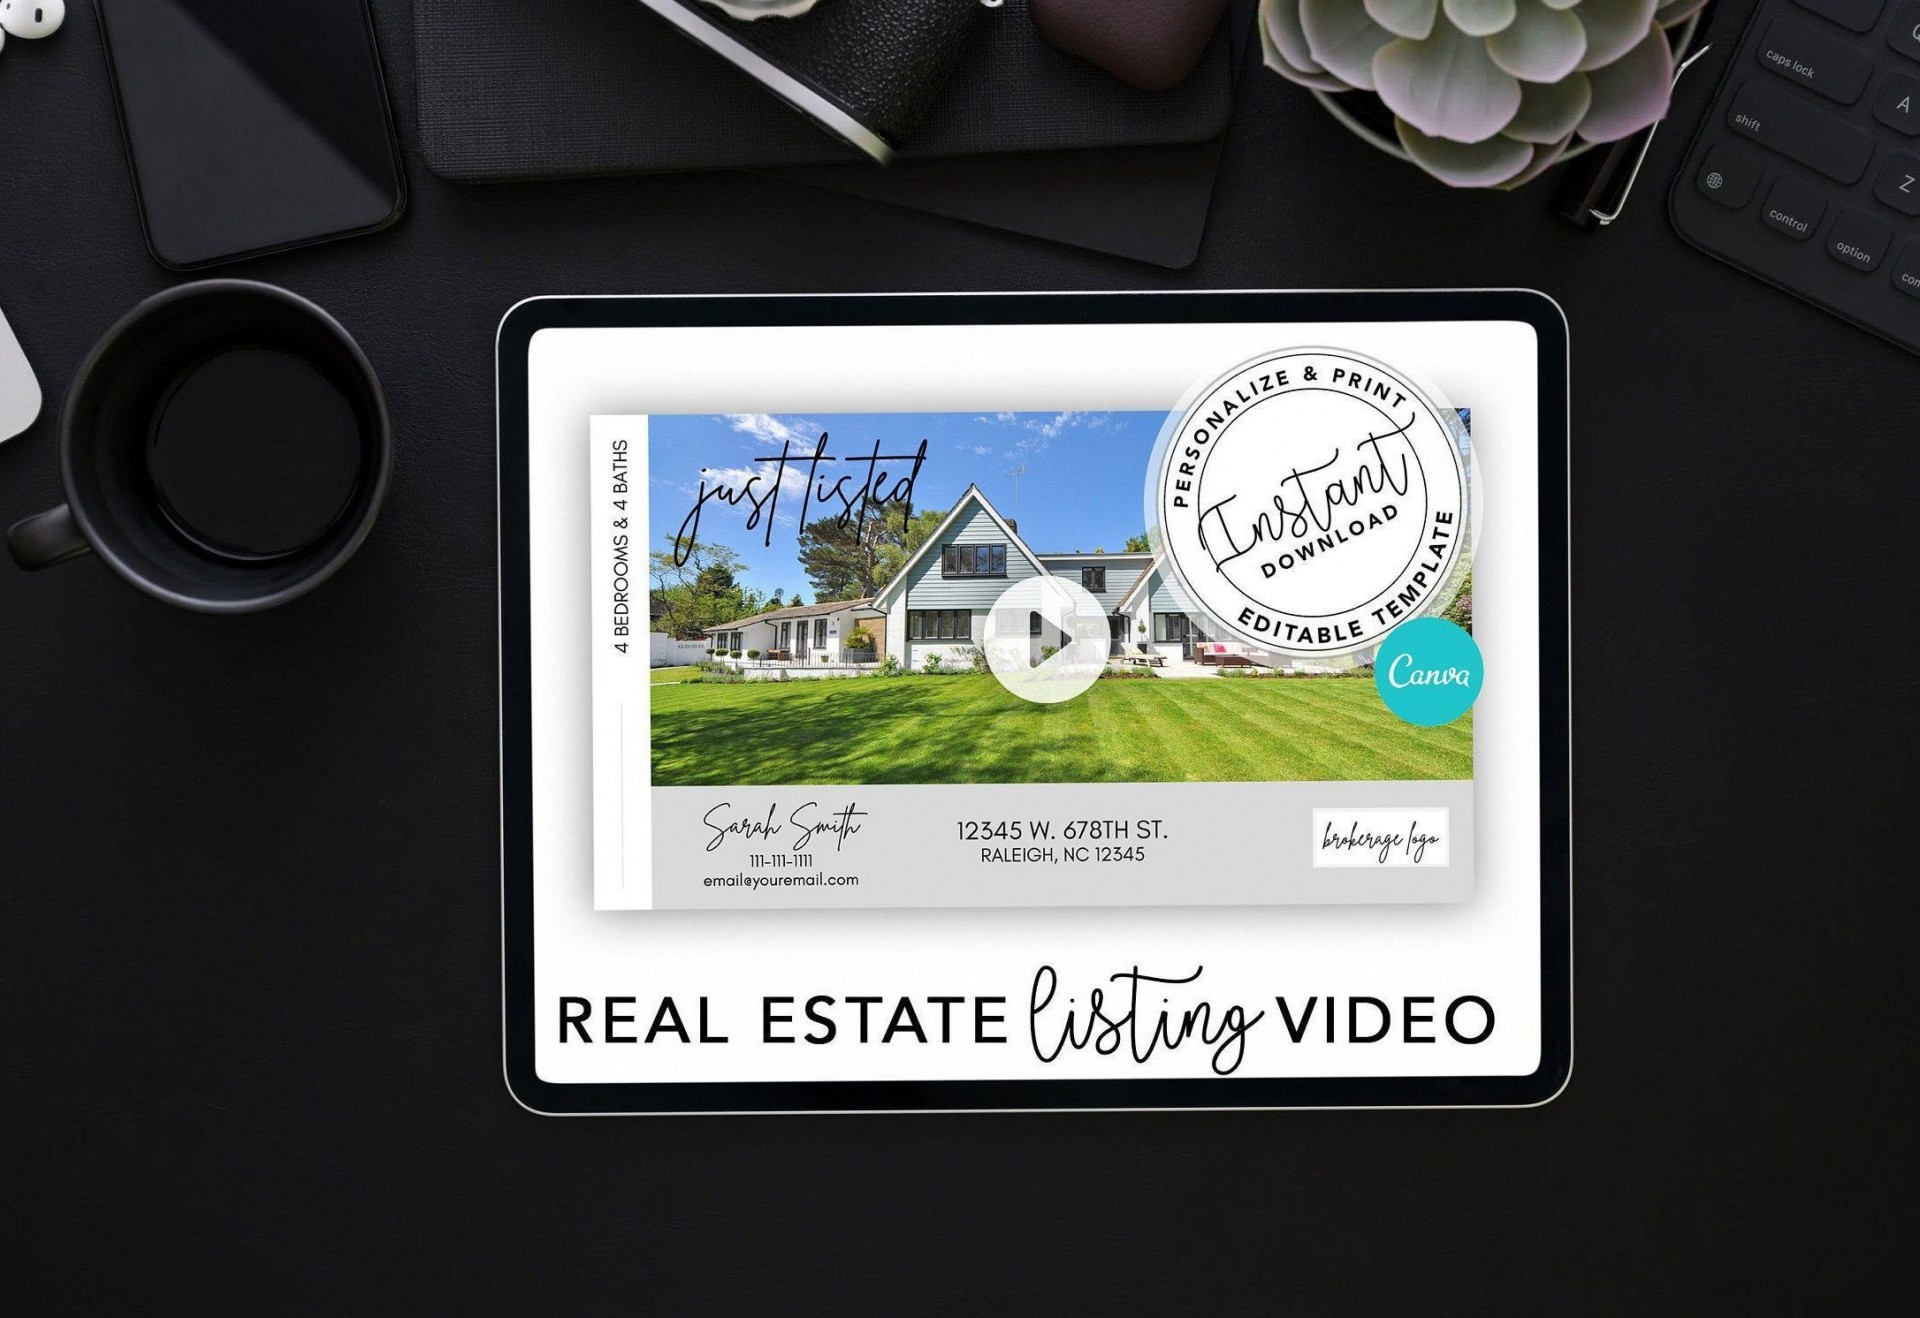 000 Stunning Real Estate Marketing Video Template High Definition  Templates1920